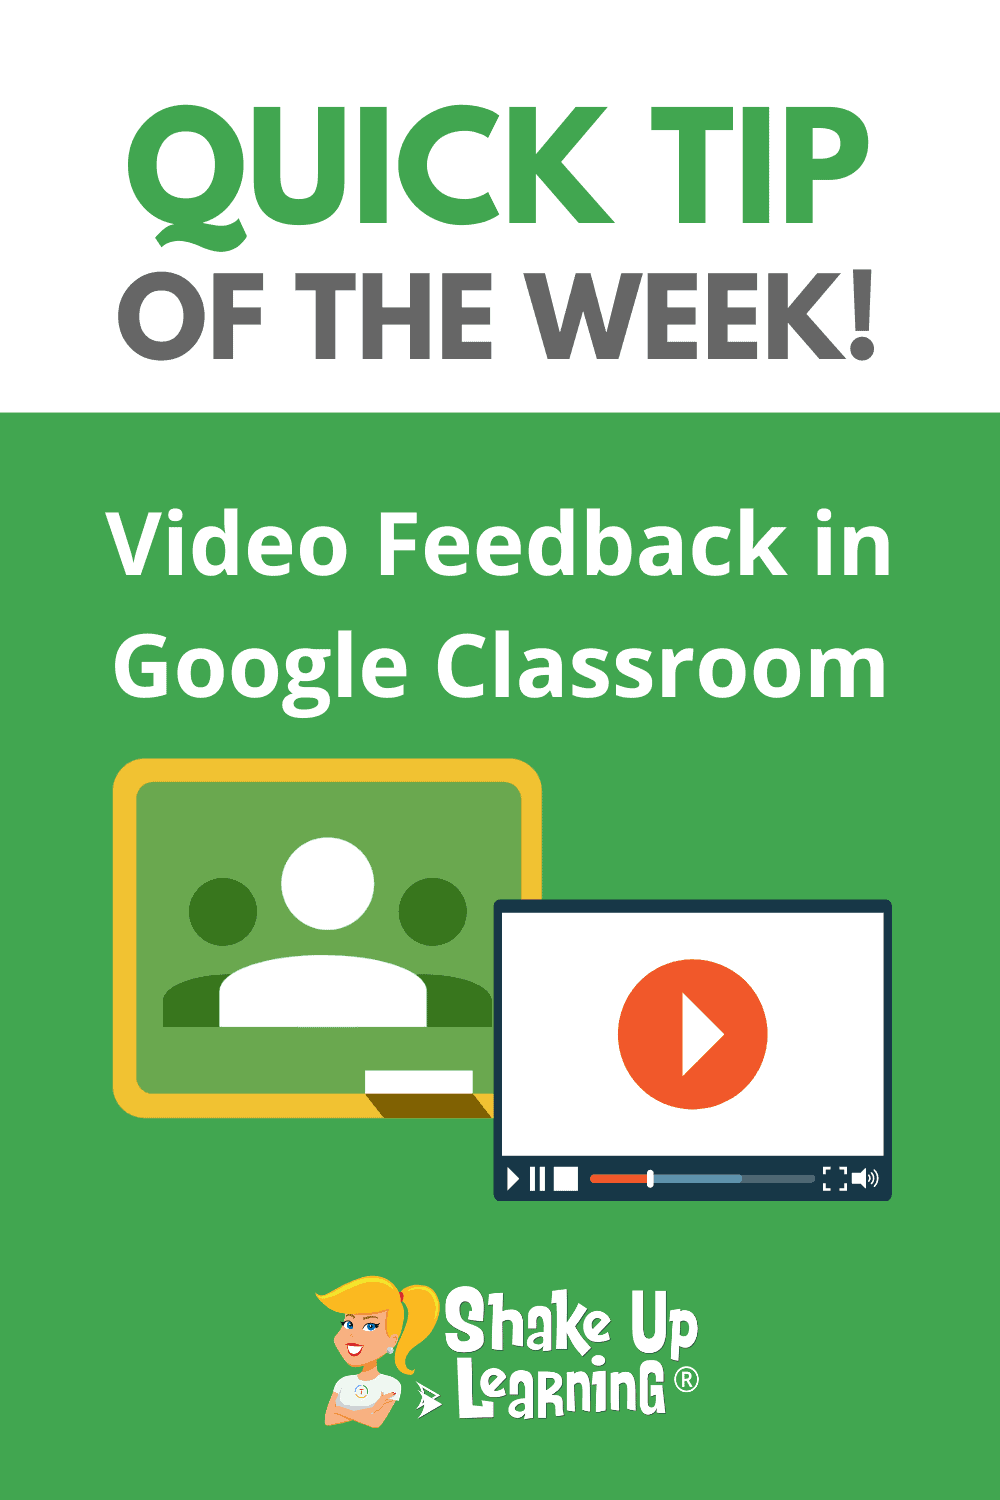 How to Leave Video Feedback in Google Classroom